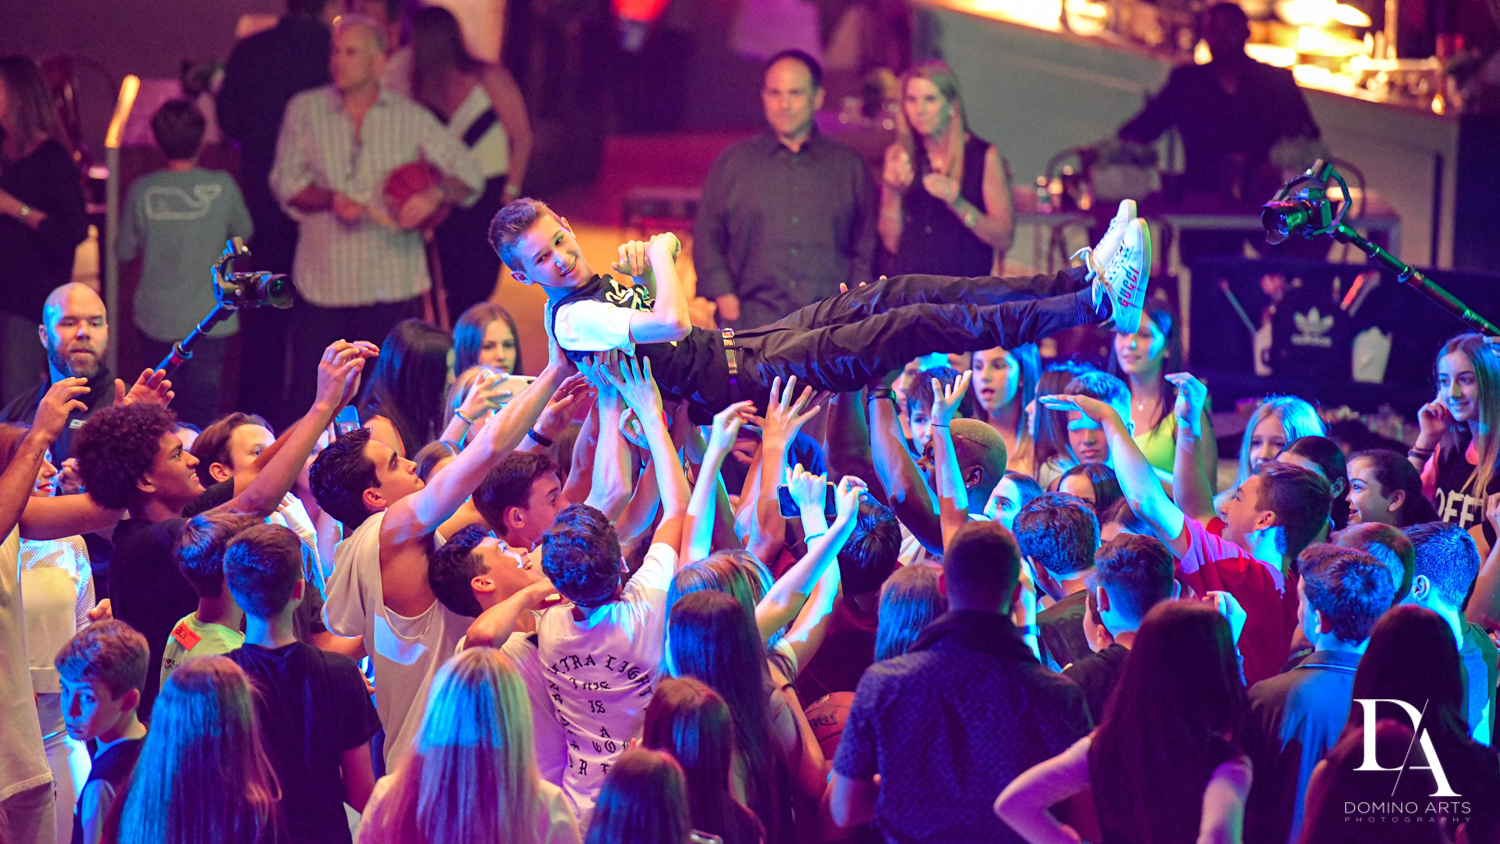 crowd surfing at Urban Graffiti BNai Mitzvah with celebrity Shaq at Xtreme Action Park by Domino Arts Photography